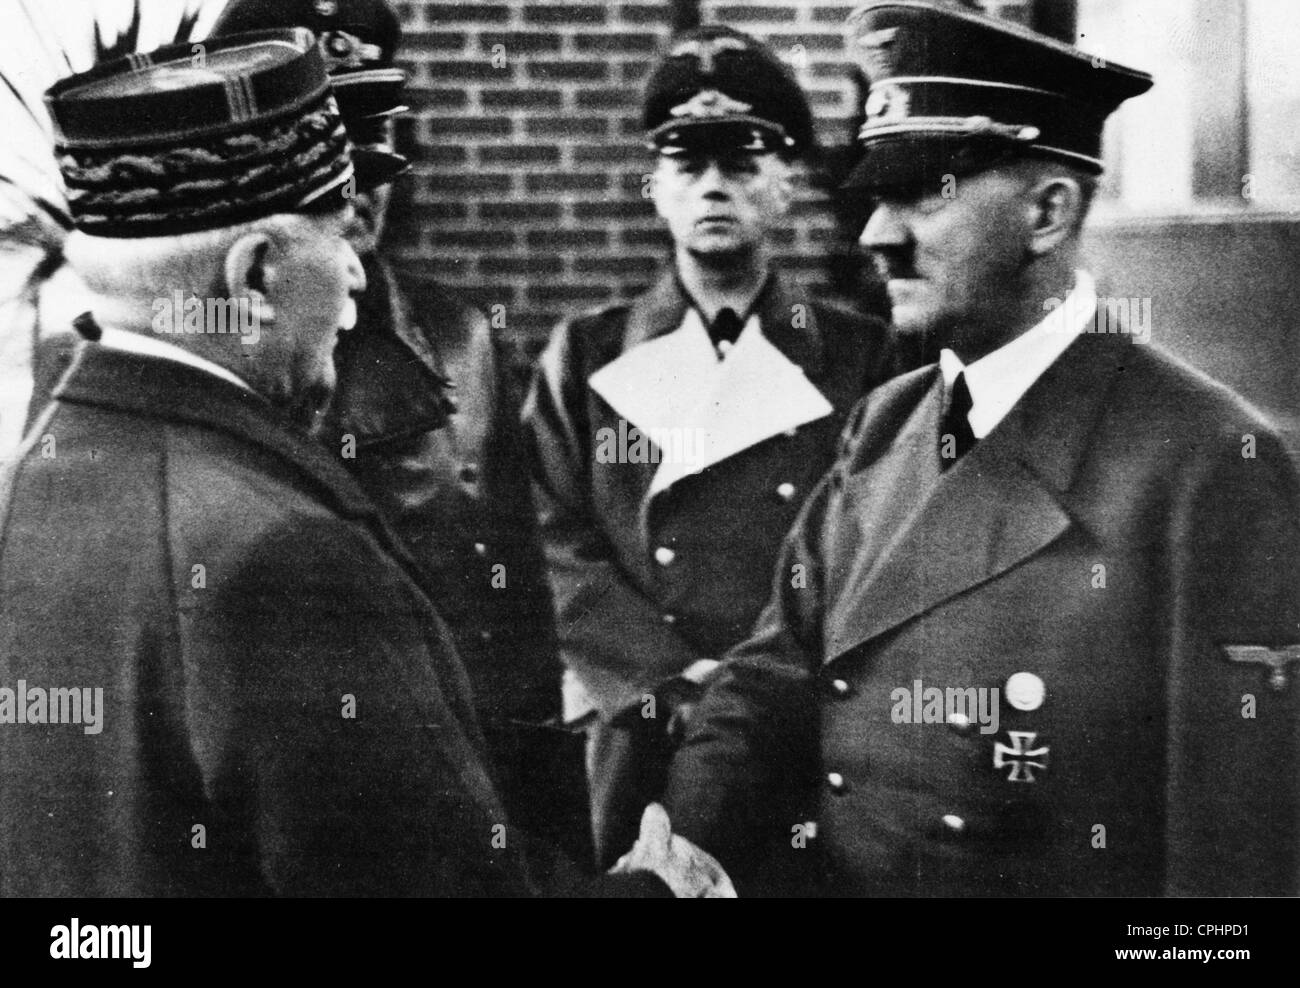 Adolf Hitler greeting Marshal Petain in Montoire, France, 1940 (b/w photo) - Stock Image